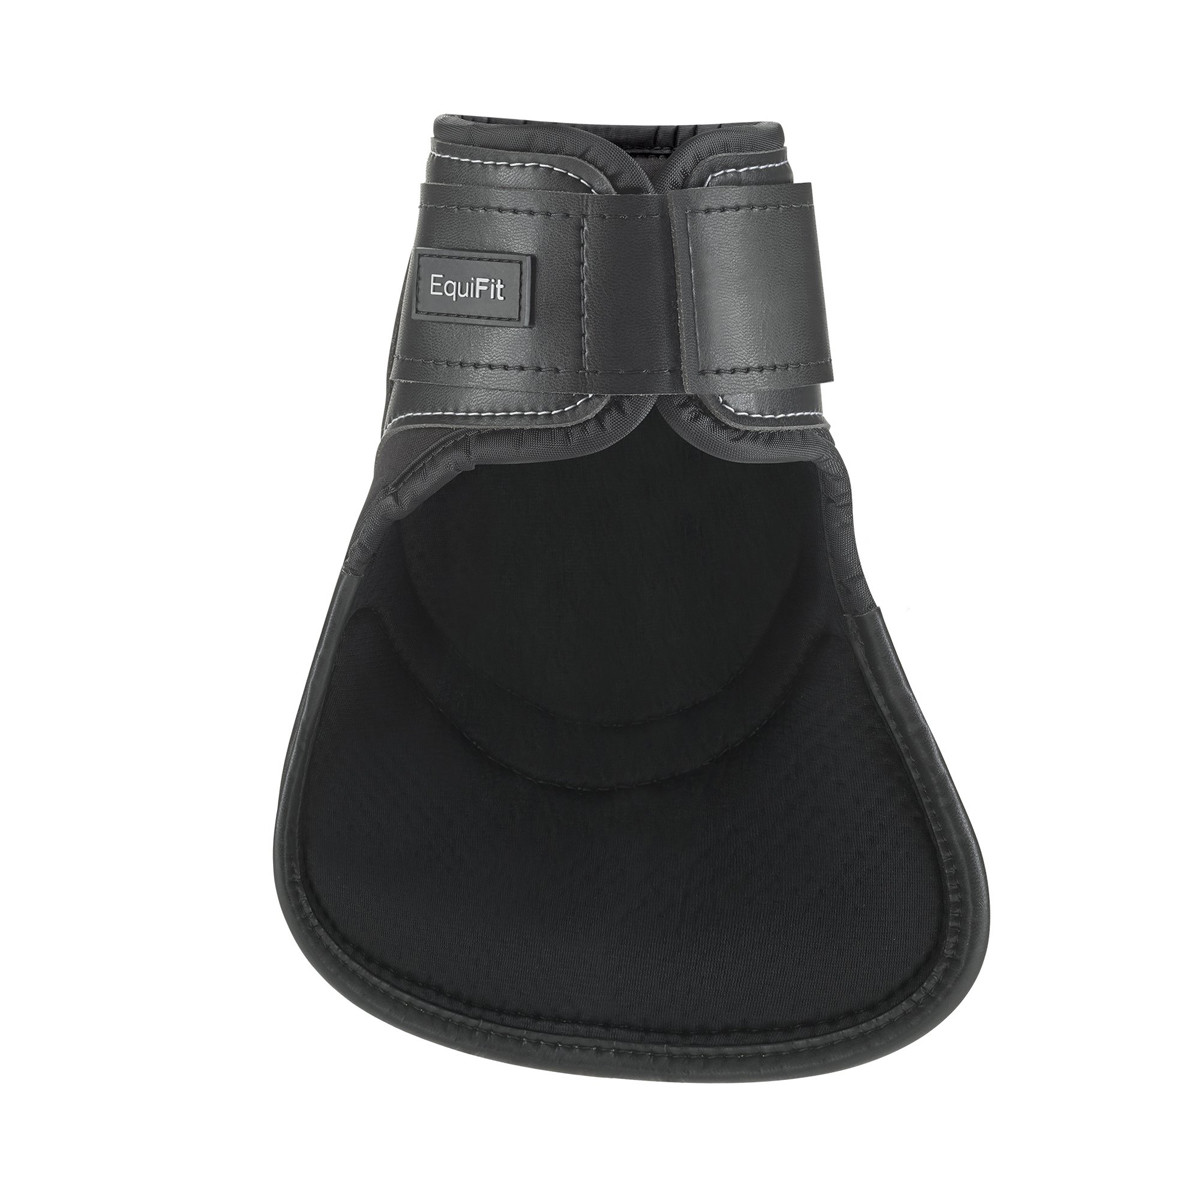 EQUIFIT YOUNG HORSE HINDBOOT W/ EXTENDED LINER - IMPACTEQ